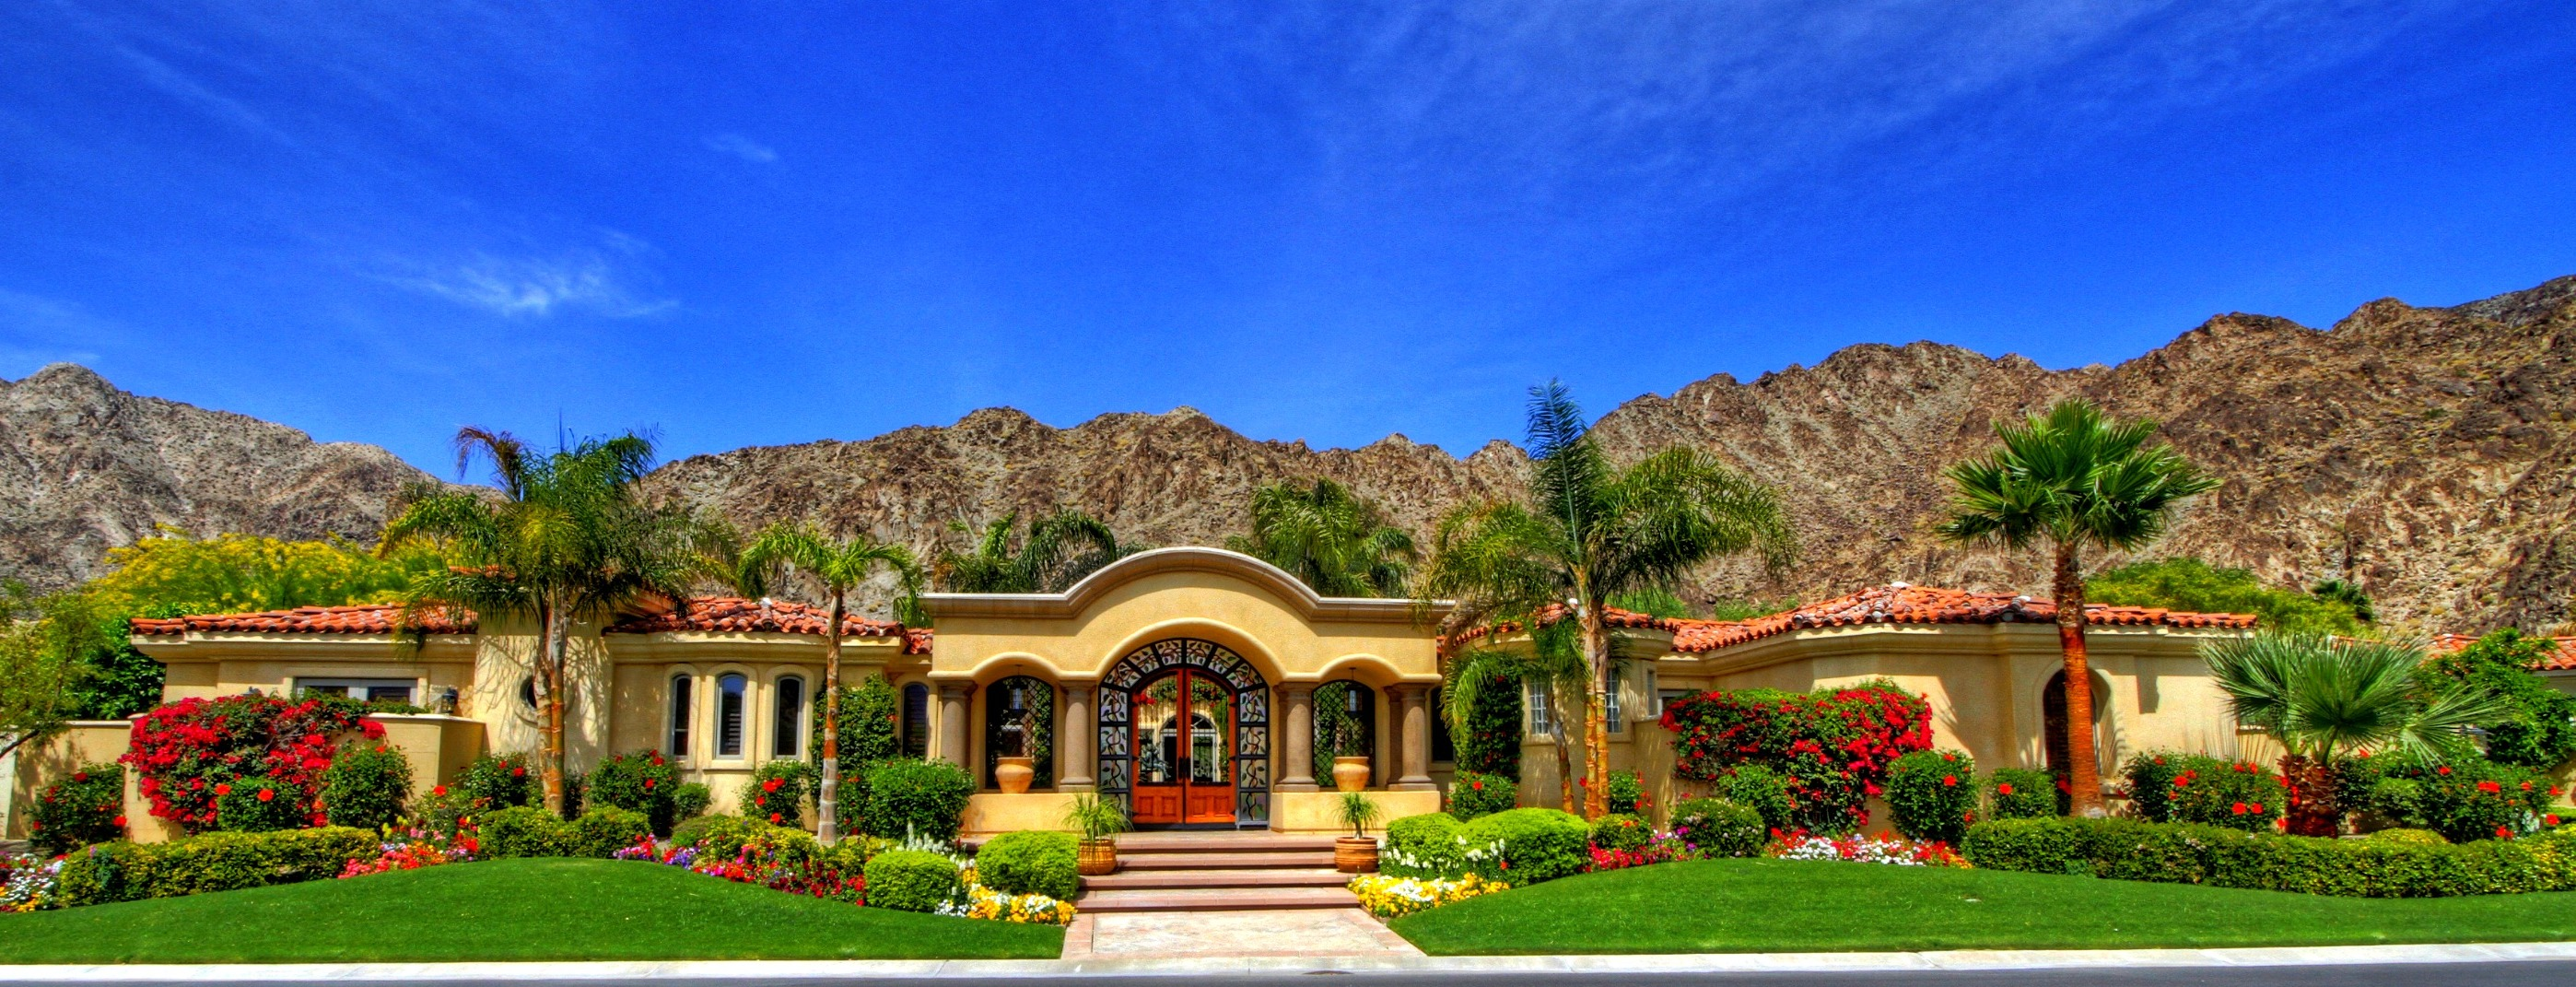 La quinta ca luxury real estate big winner at humana s pga for Real house